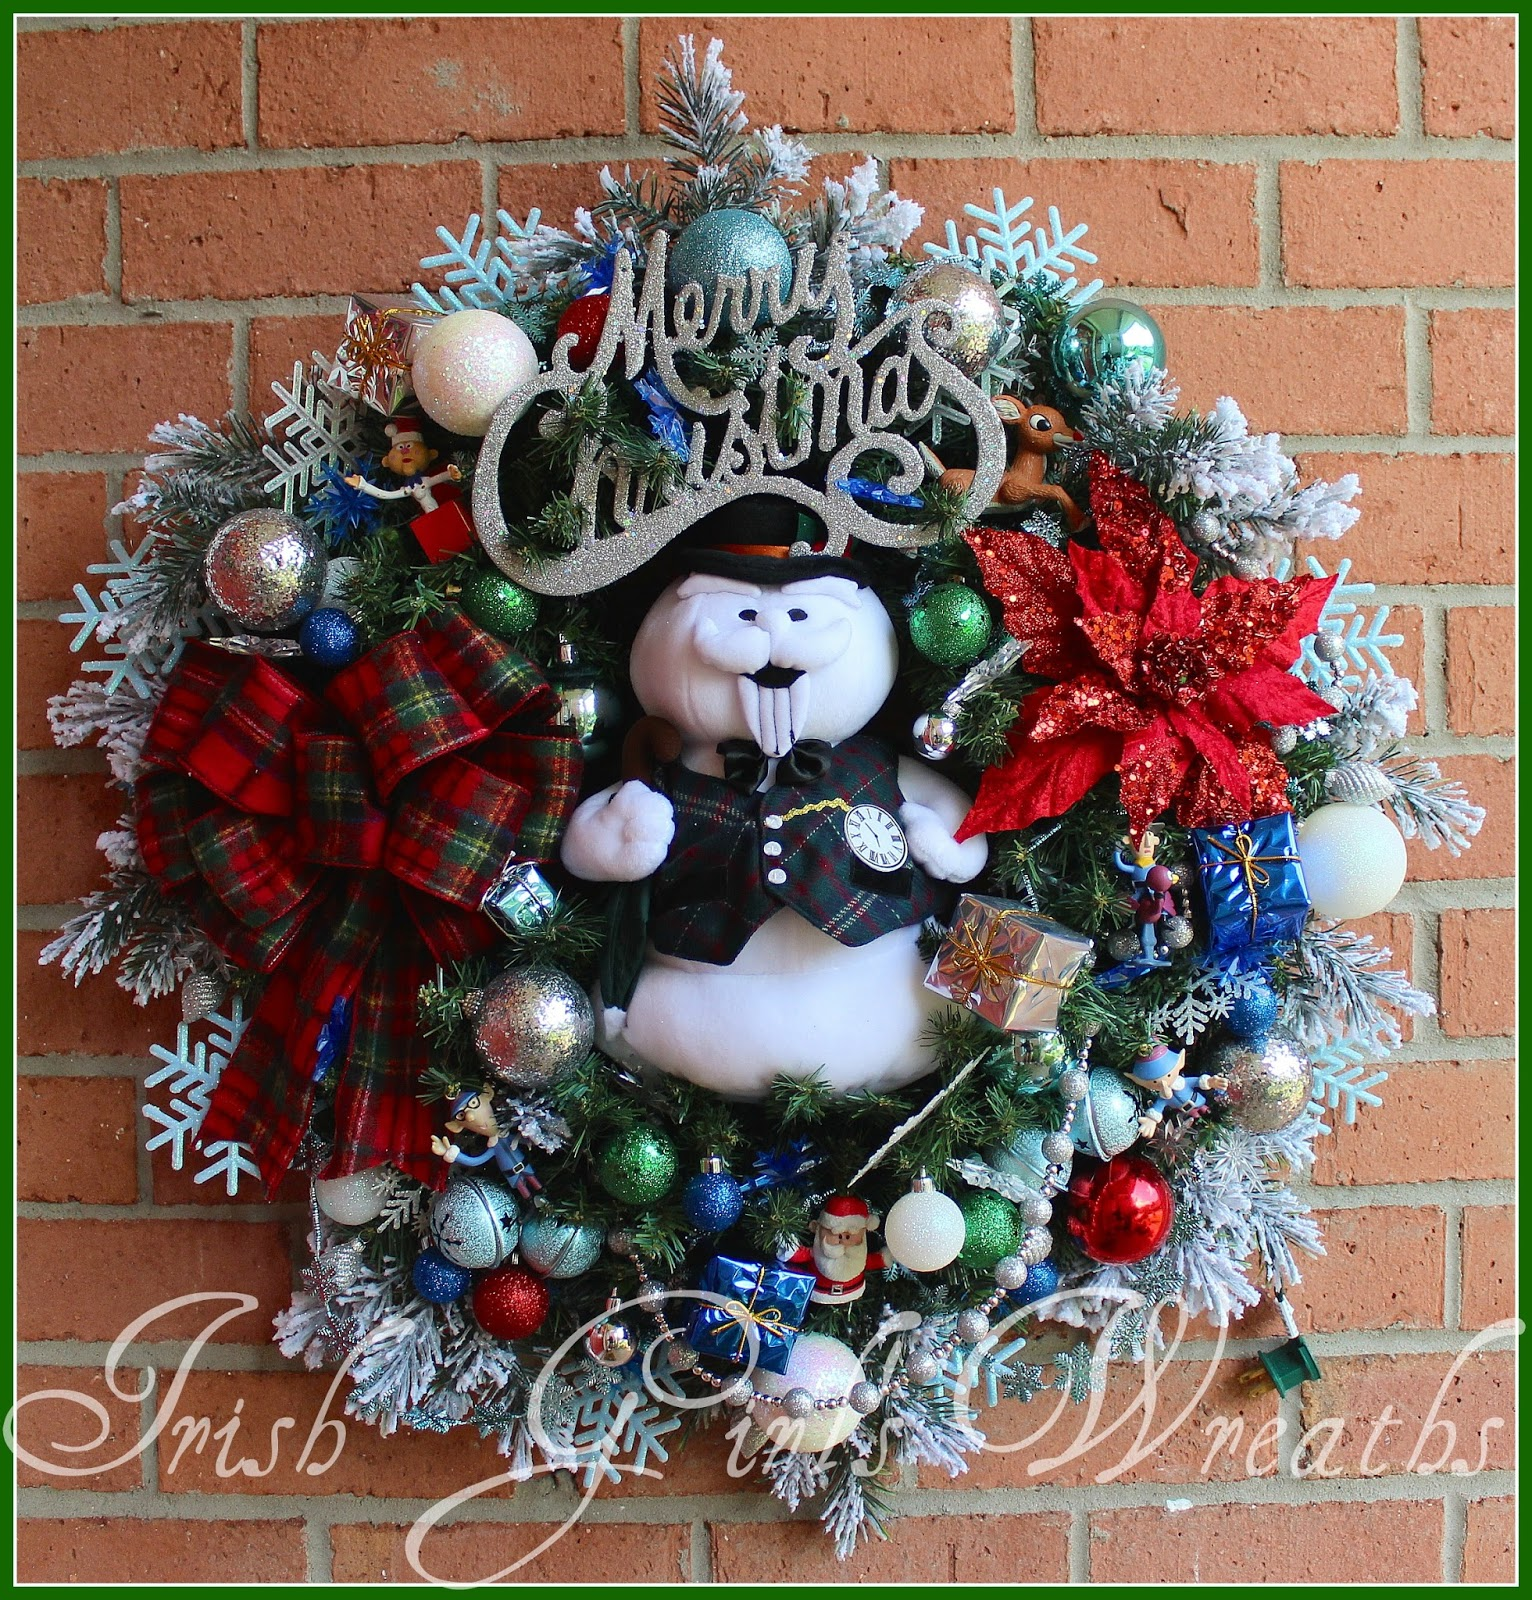 SAM the Snowman Christmas Wreath, Rudolph, Santa, Misfit Toys, blue and white snowflake lights, sleigh bells